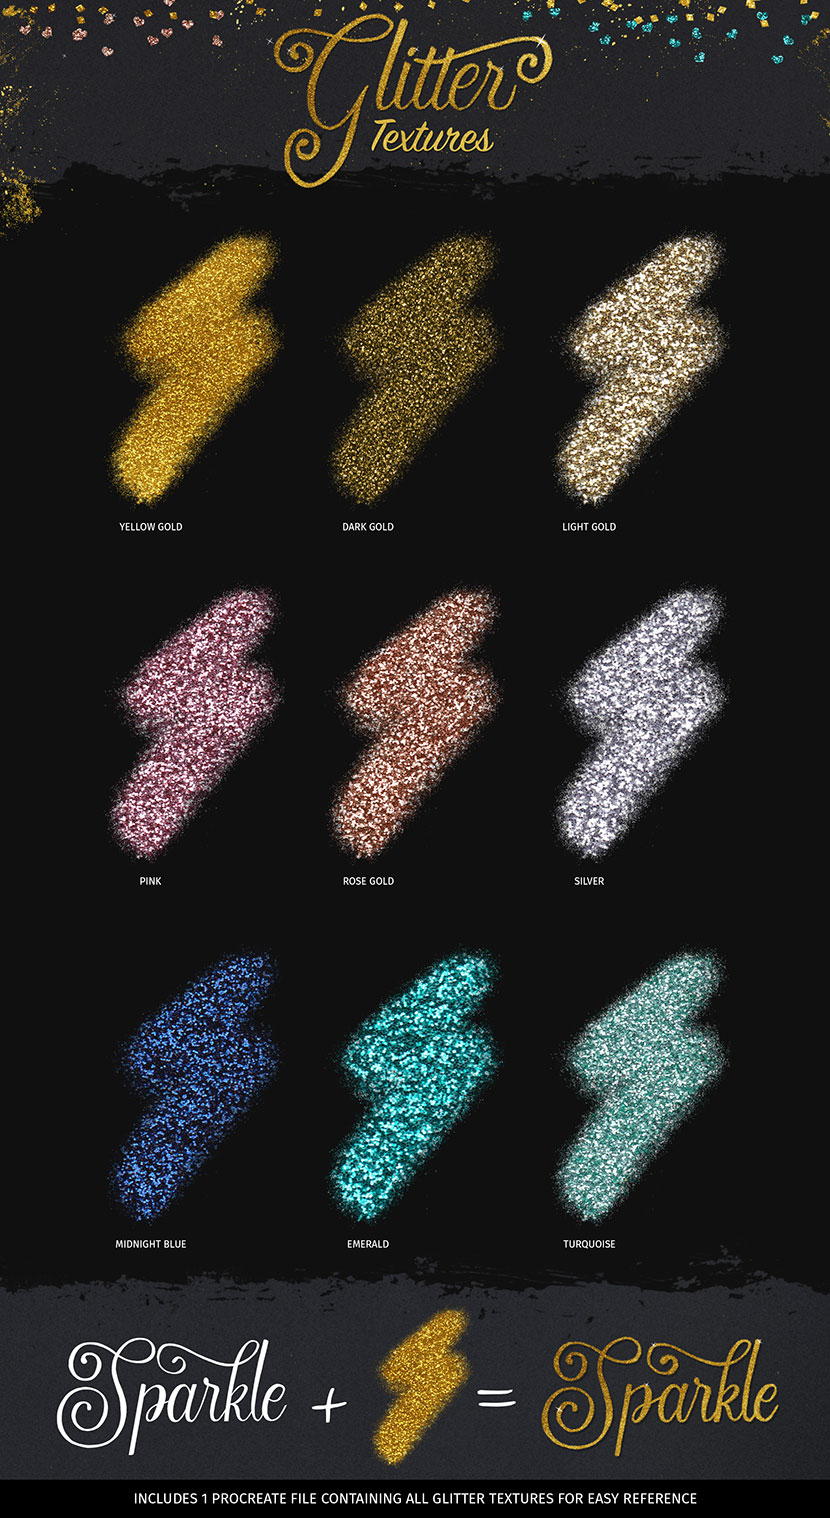 Glitter and Foil Kit for Procreate - Glitter Textures